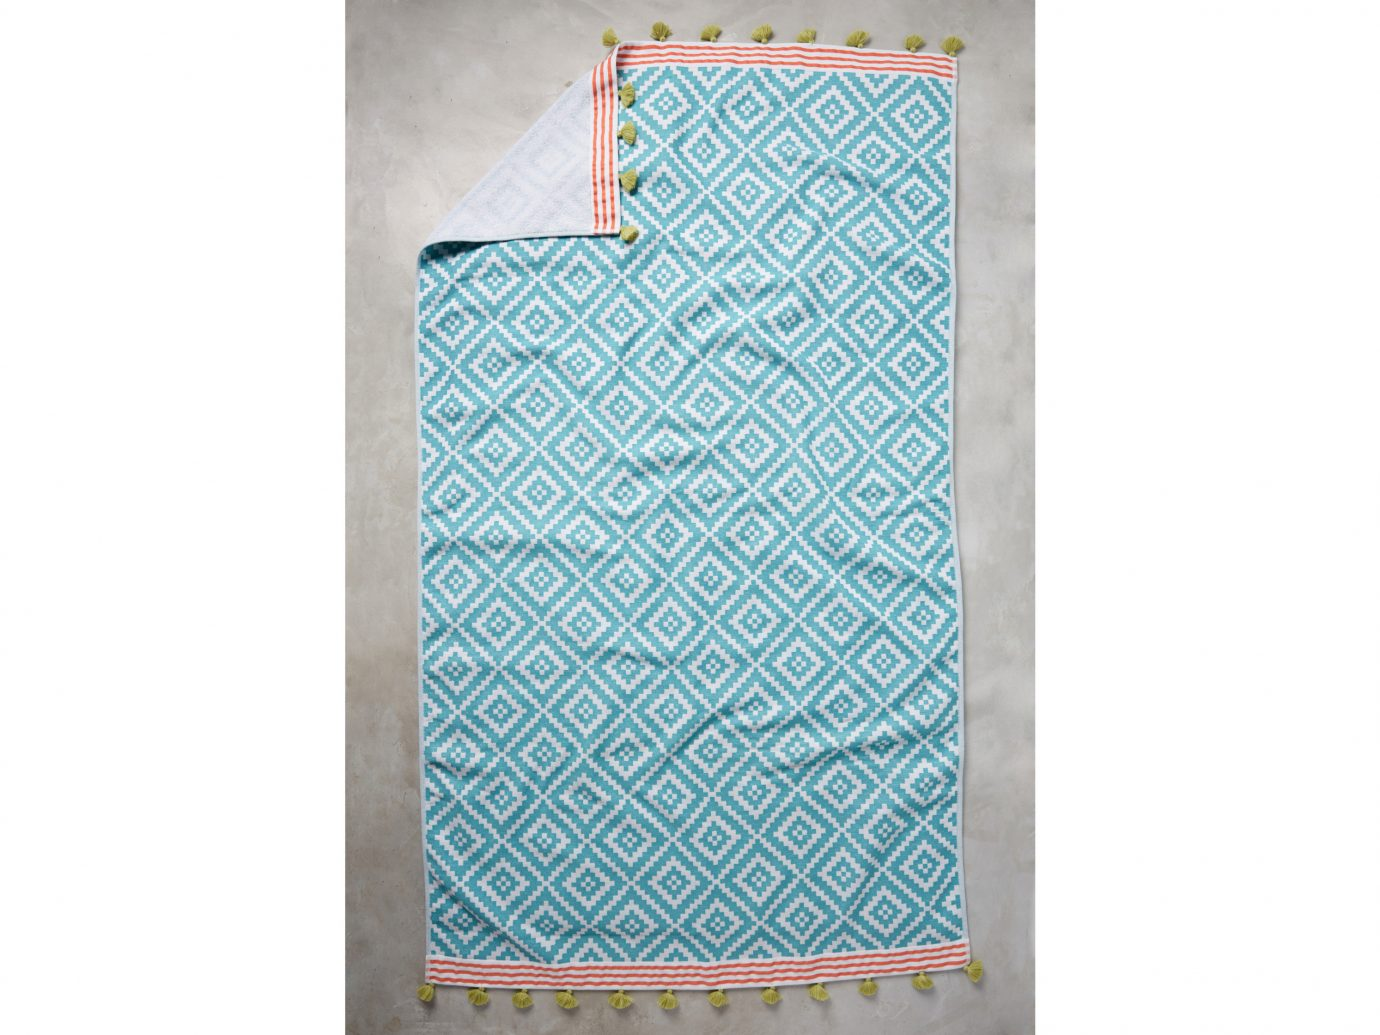 Style + Design textile turquoise kitchen towel product material font rectangle linens pattern